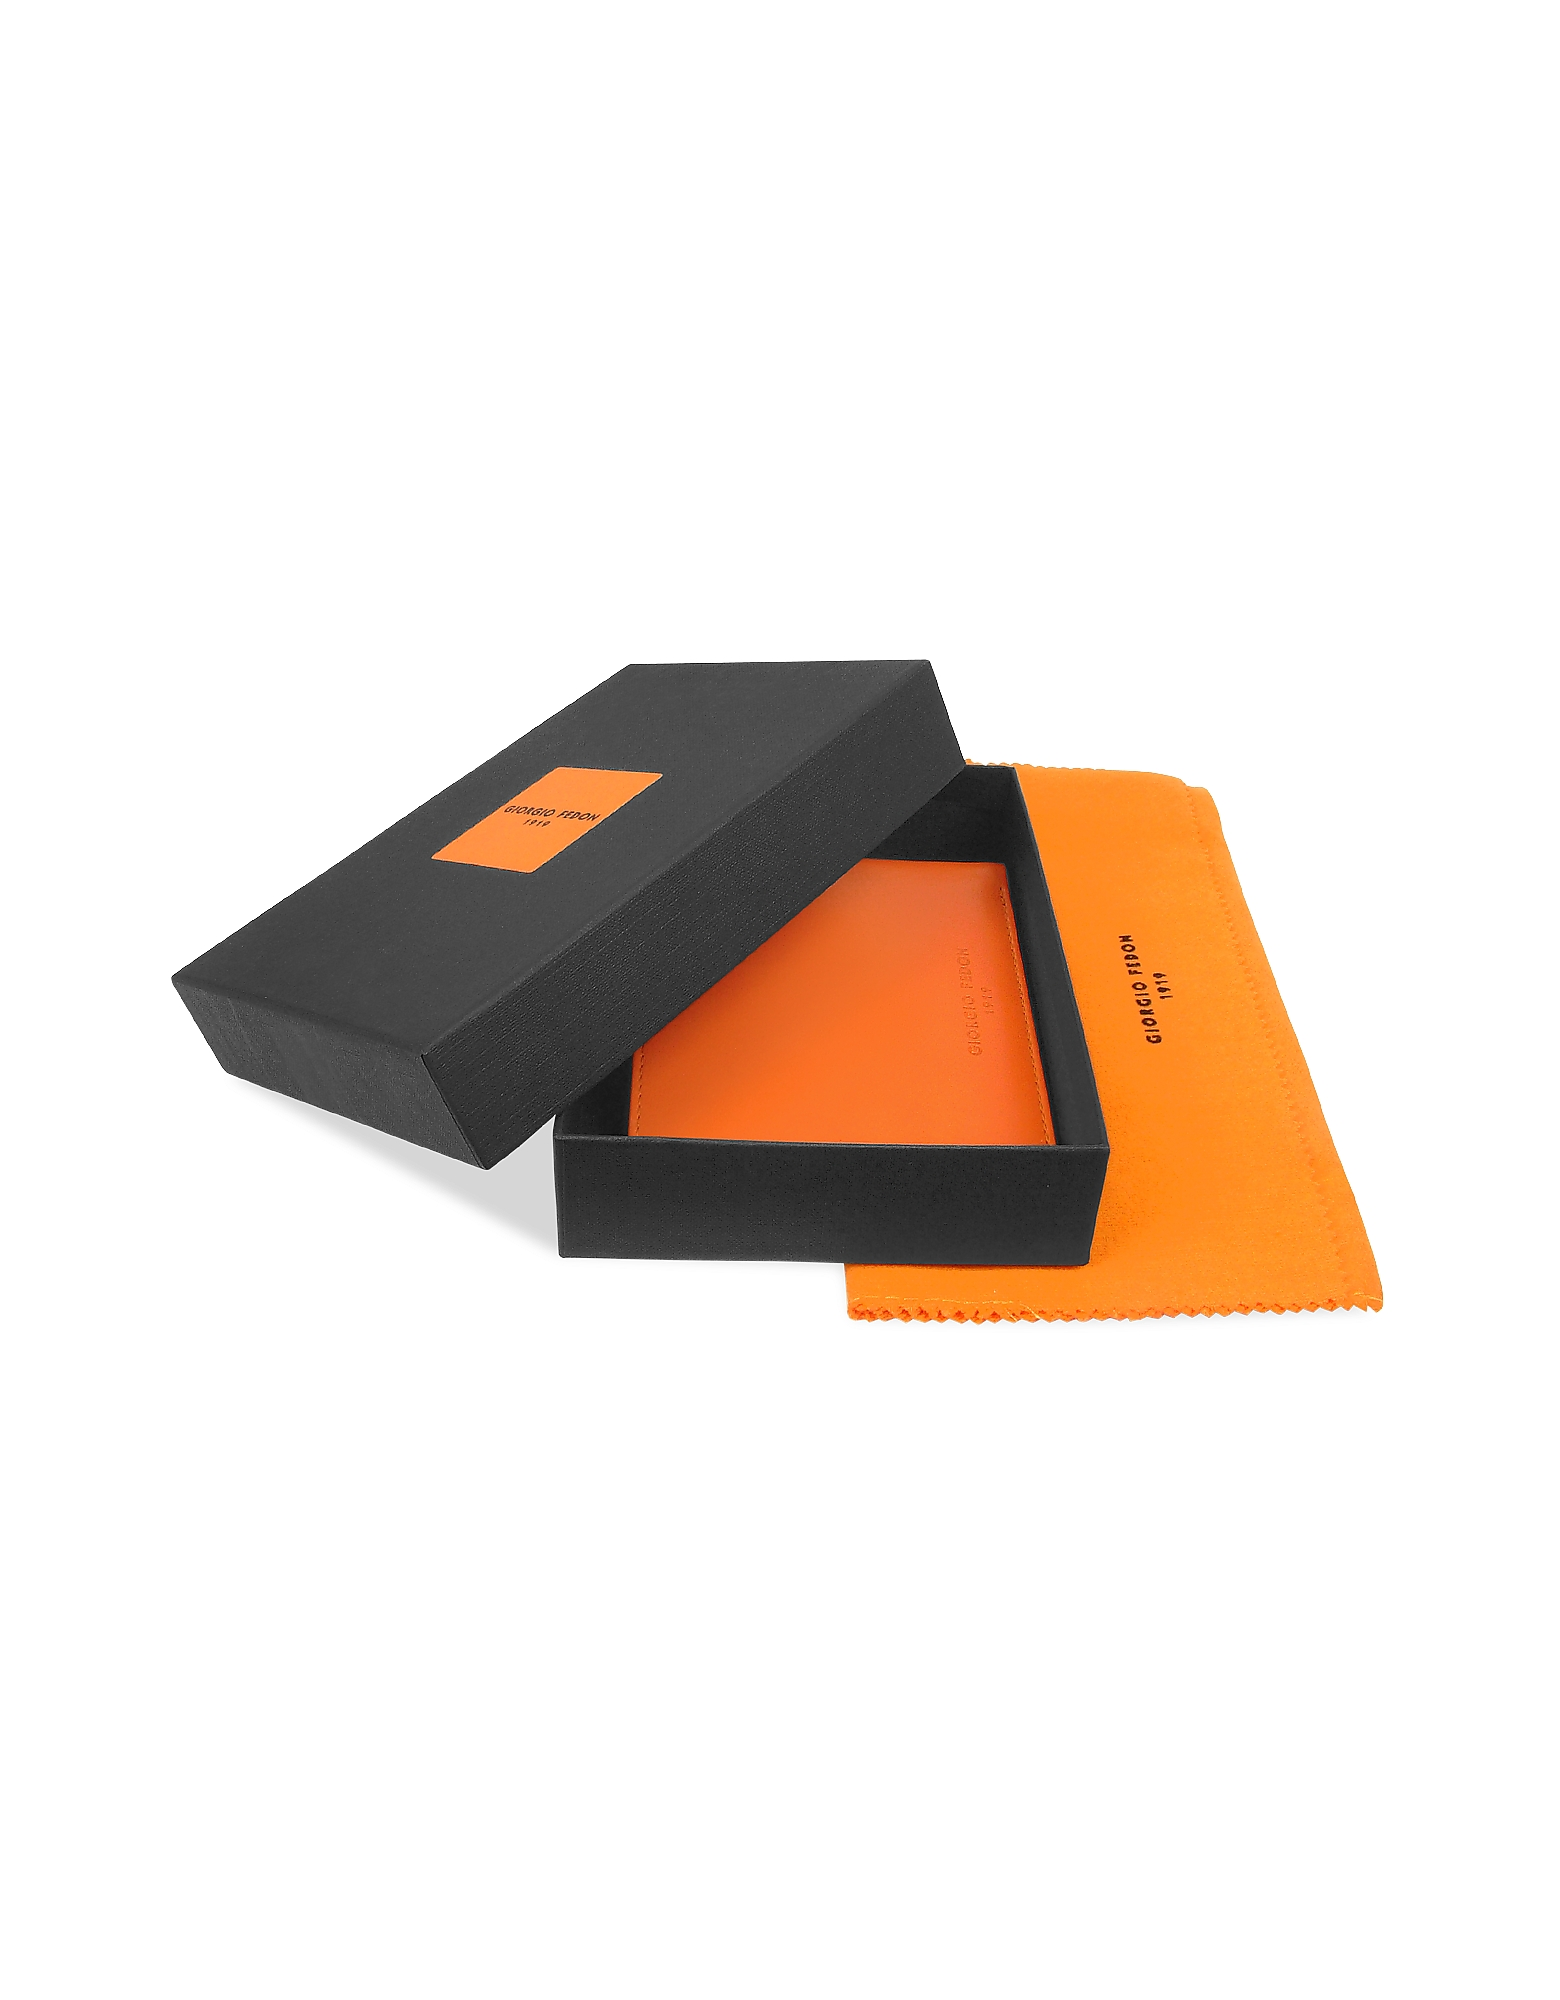 Classica - Men's Orange Calfskin Billfold Wallet от Forzieri.com INT